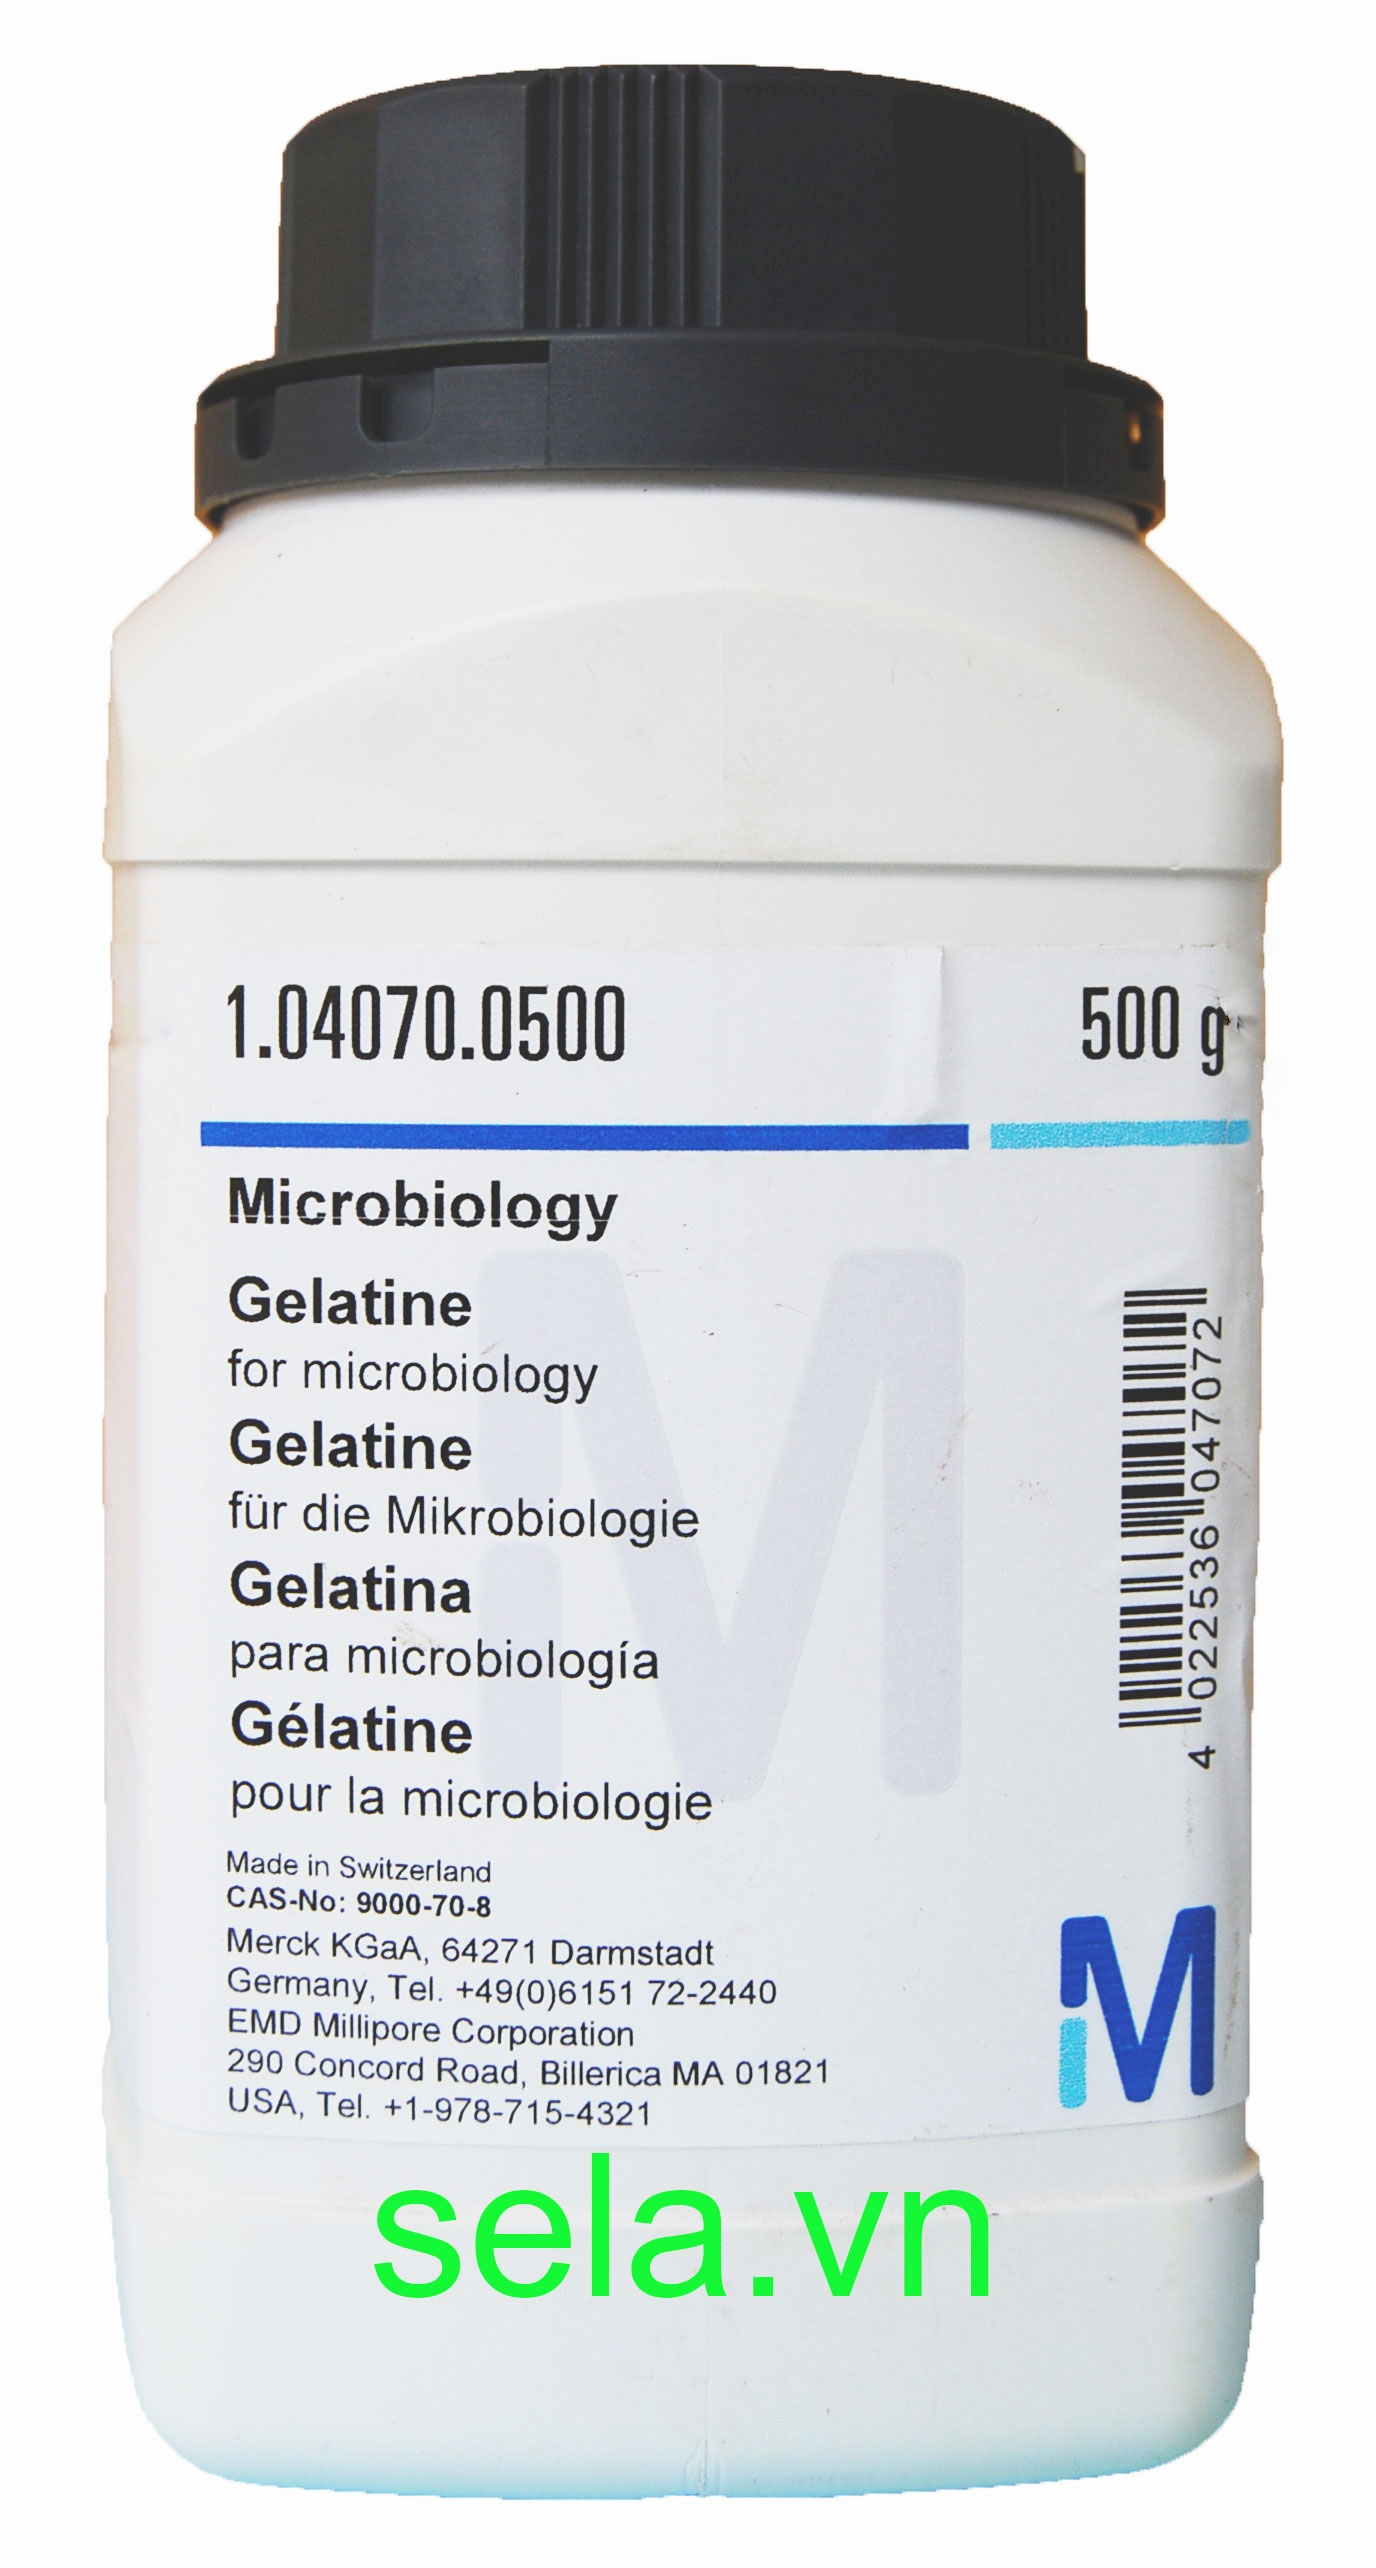 Gelatine for microbiology